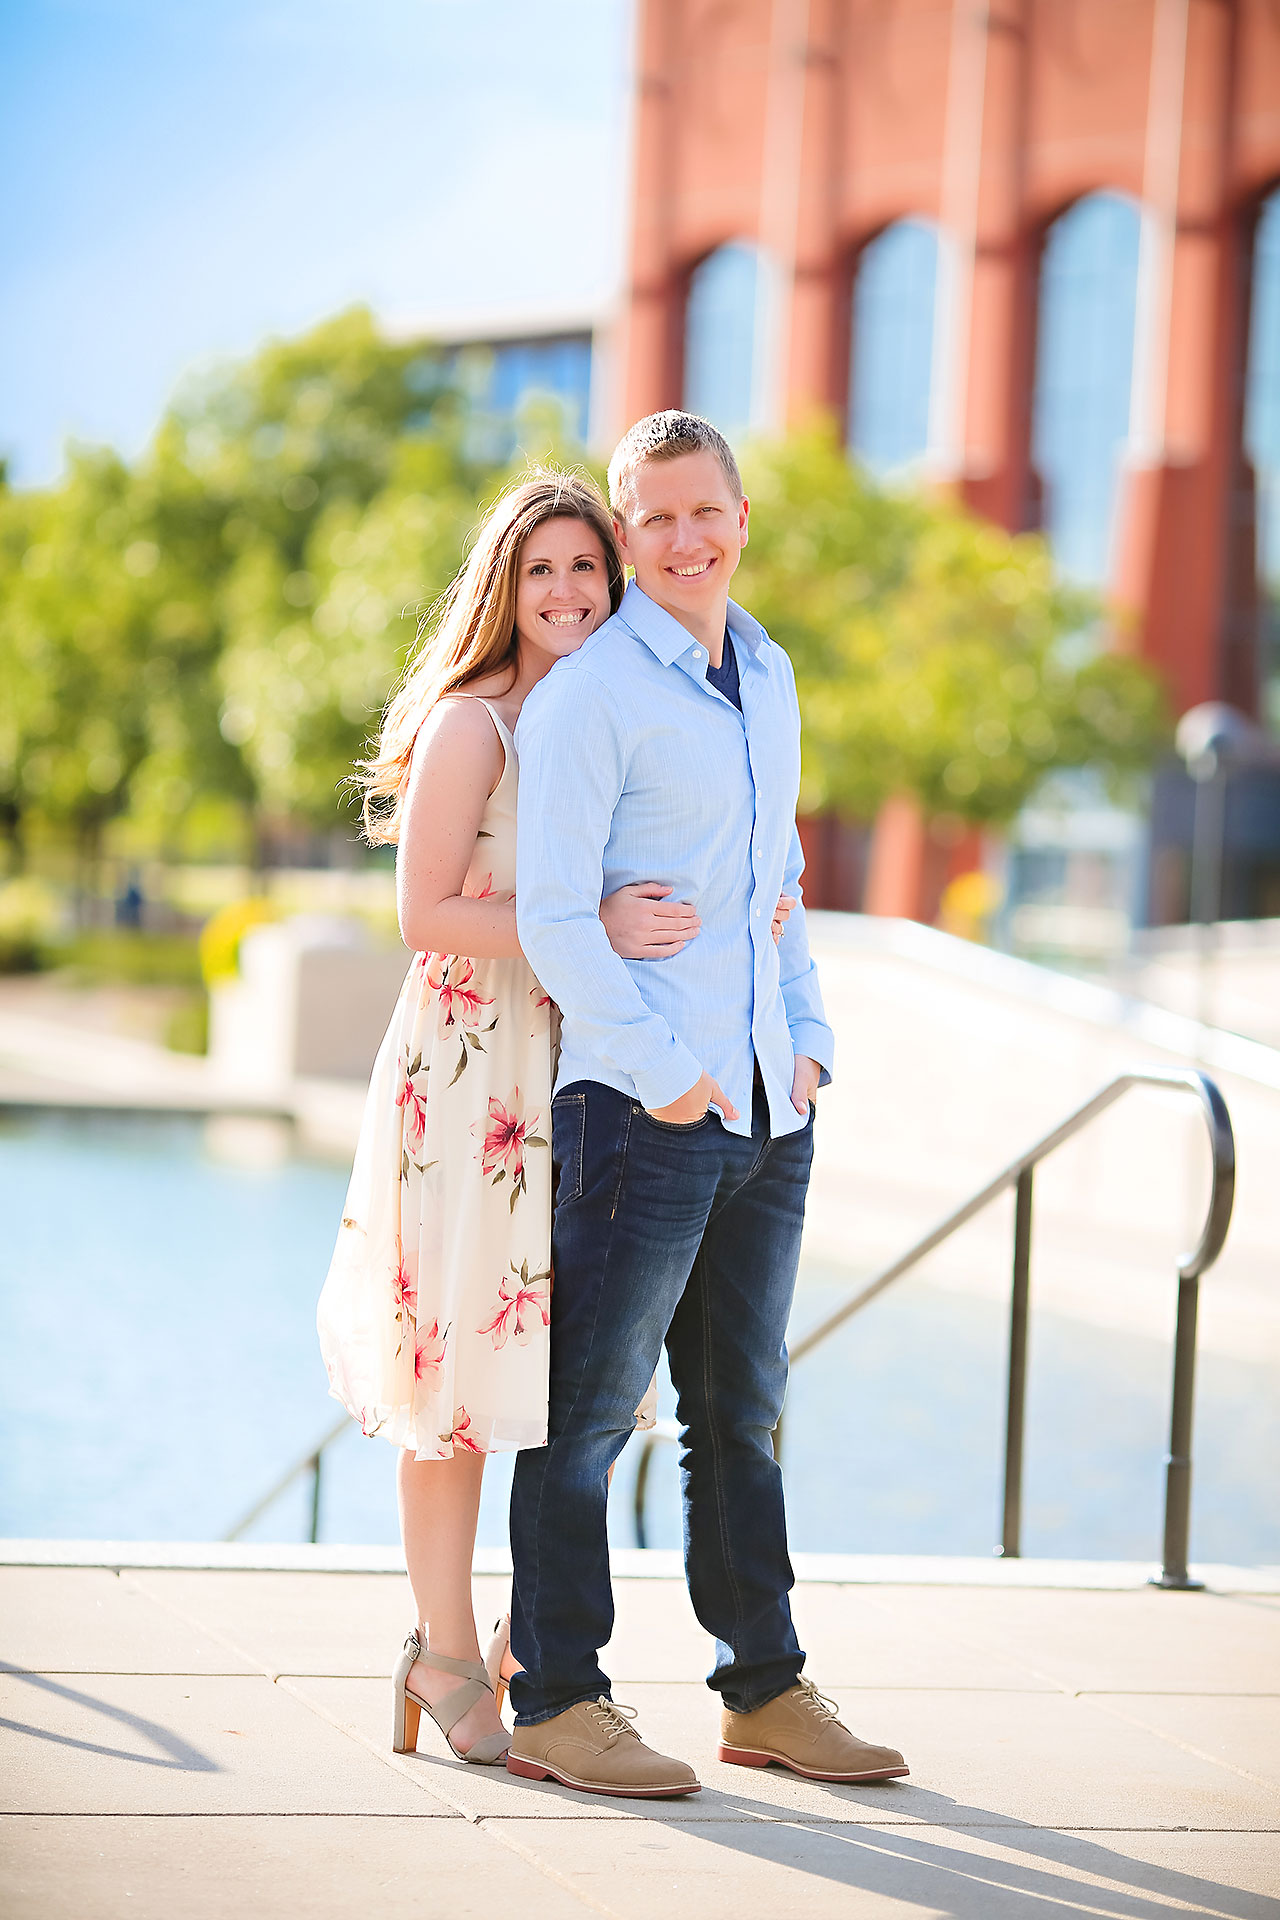 Chelsea Jeff Downtown Indy Engagement Session 206